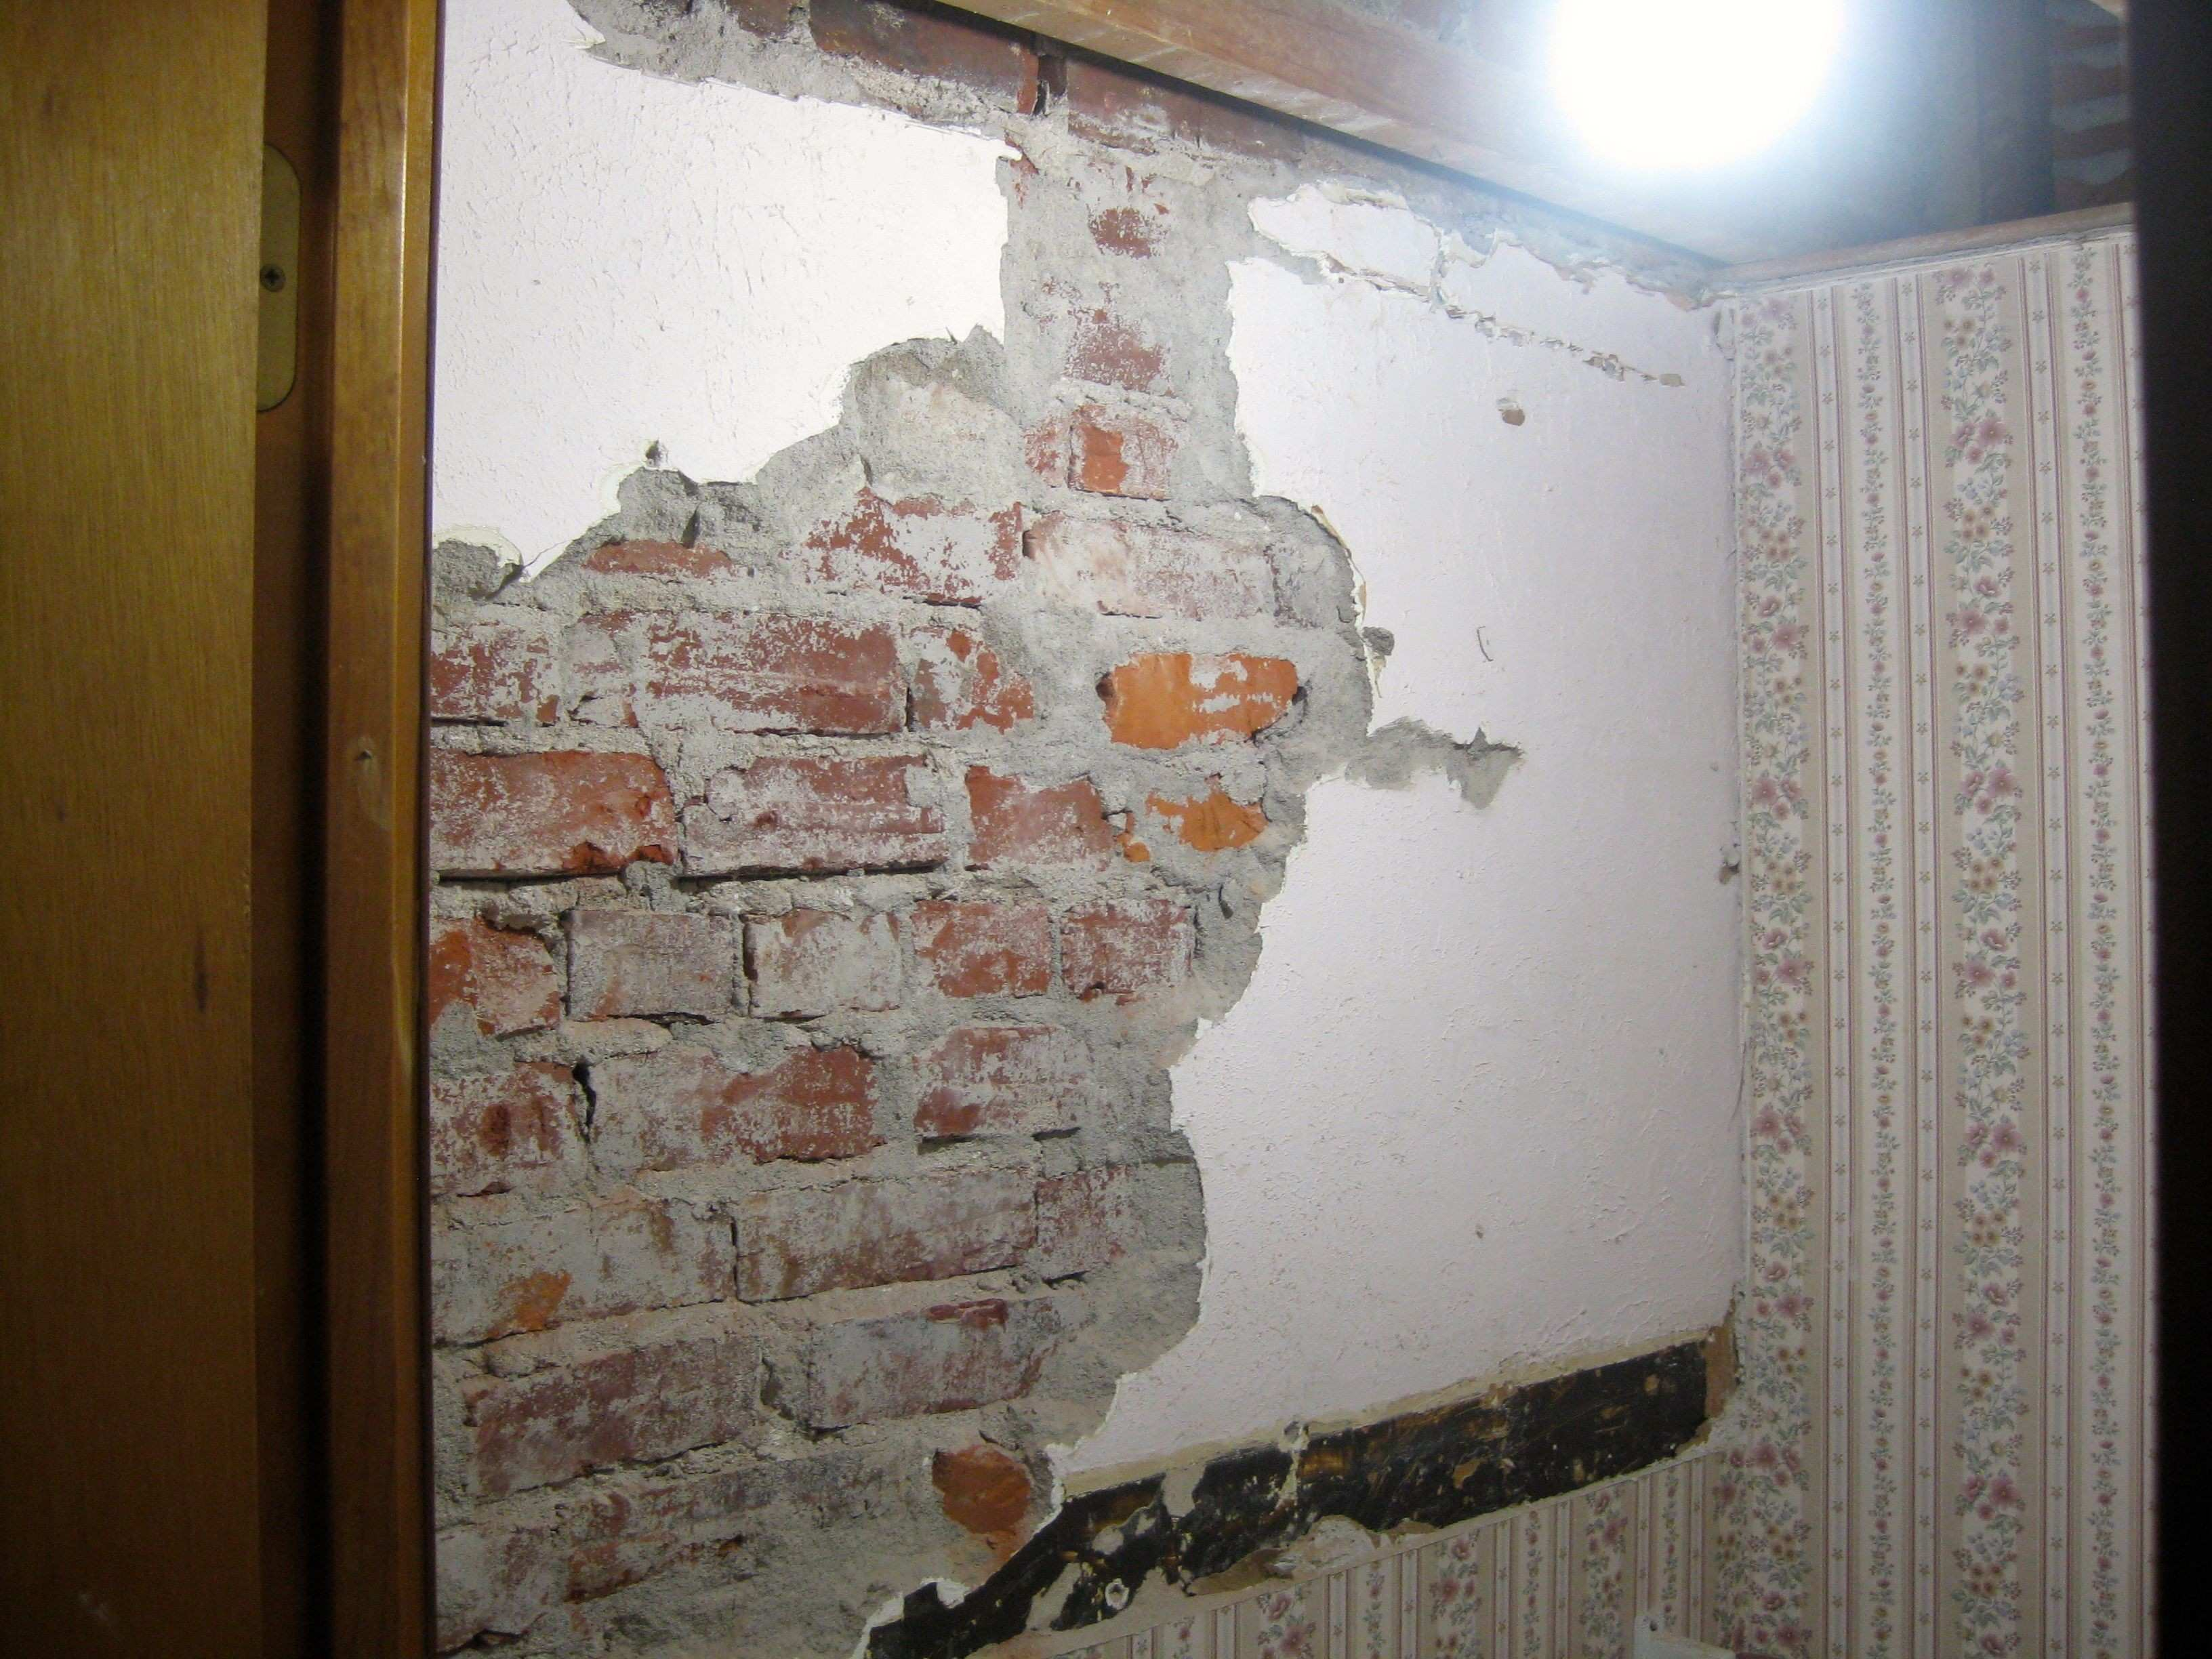 Chiseled off the plaster to expose the brick wall